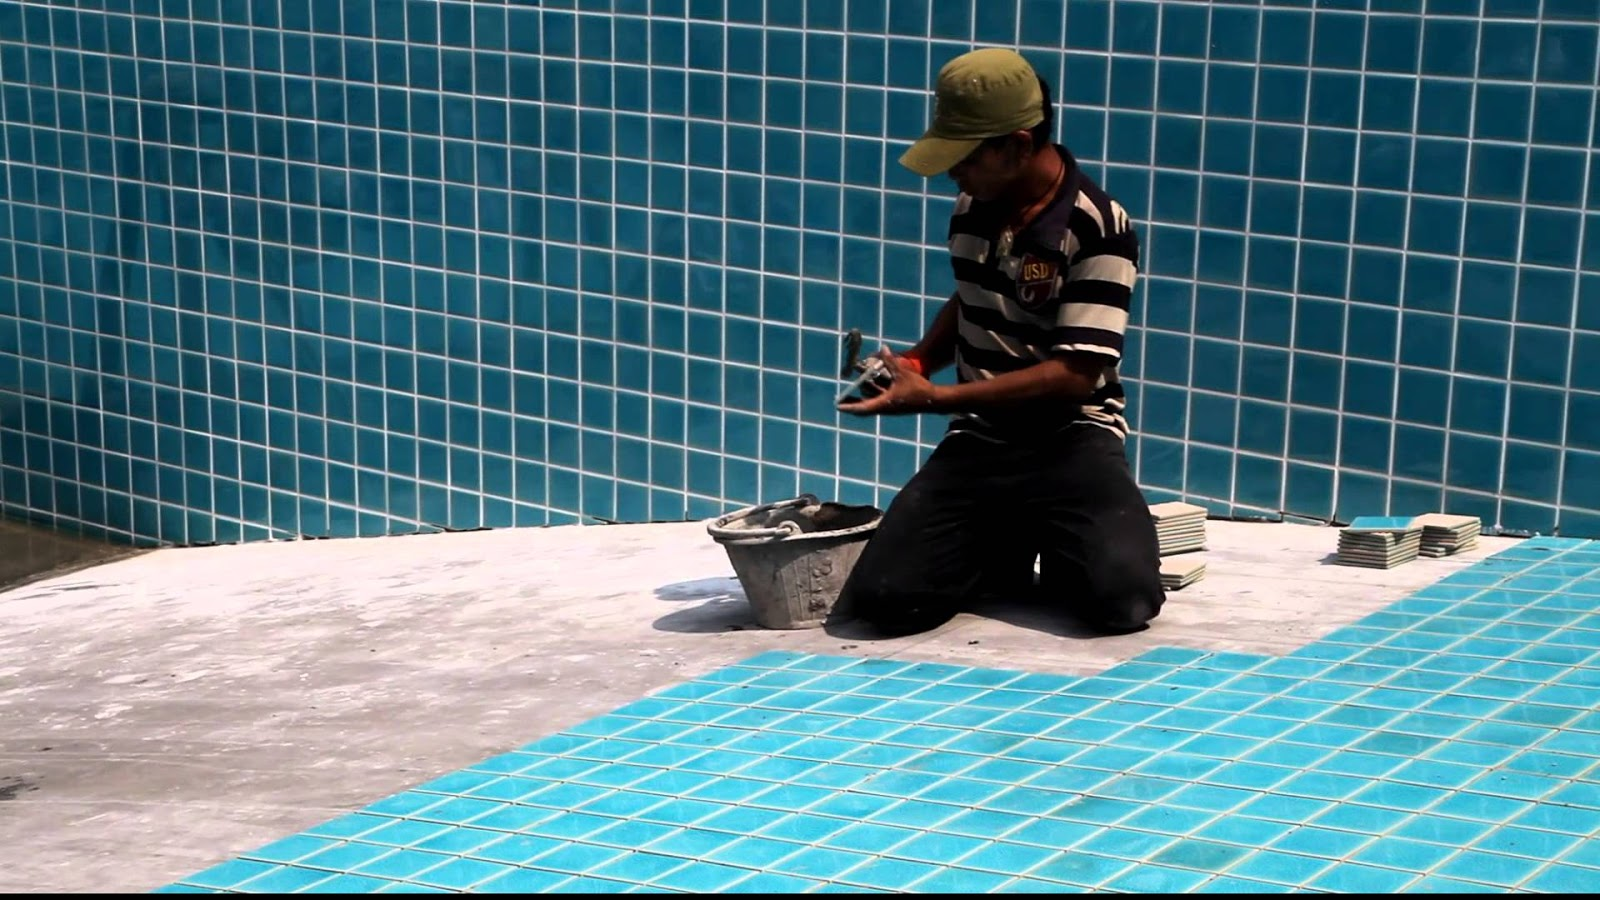 Blue World Pools: Choosing the Right Tiles for Your Swimming Pool